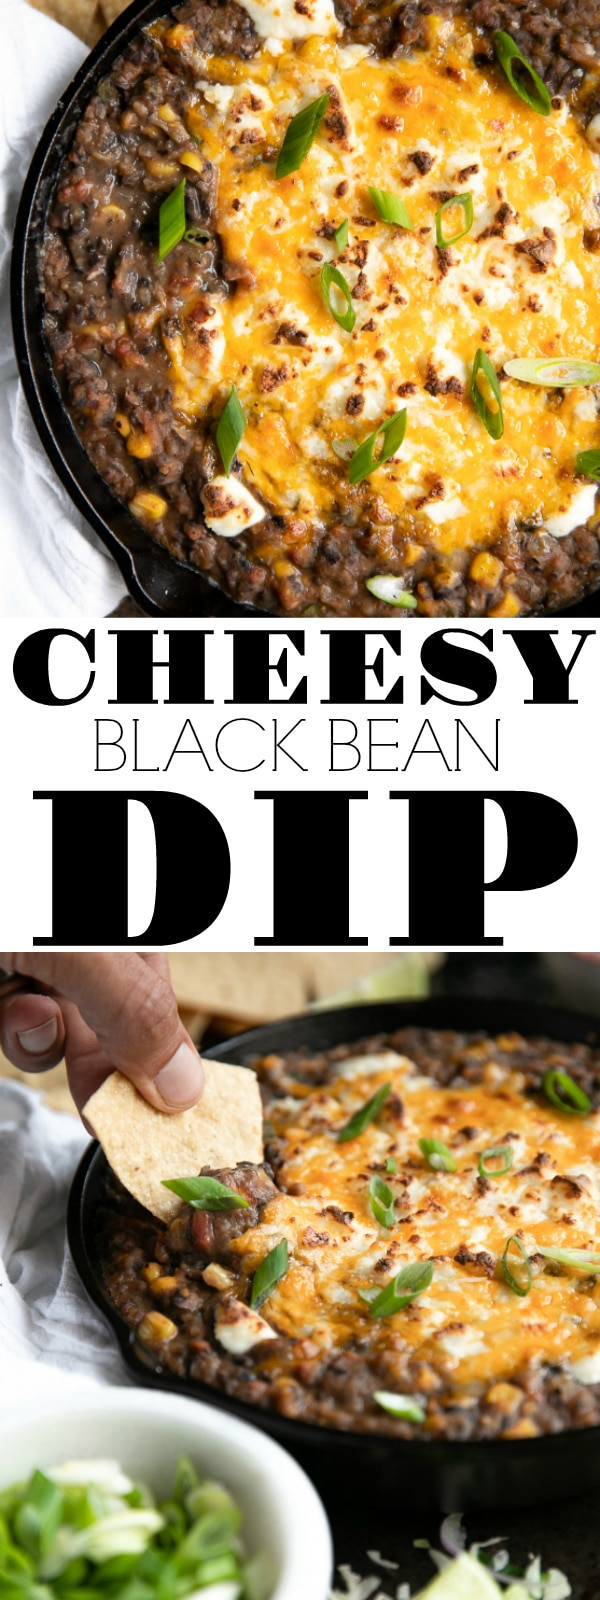 Easy Black Bean Dip Recipe with Cheese and Corn is loaded with hot and gooey cheese, sweet corn, green onions, and juicy tomatoes. Made with your favorite homemade or store-bought refried black beans, this delicious black bean dip is perfect served alongside your favorite Mexican dishes or at your next backyard bbq #blackbeans #beandip #refriedbeans #partyfood #cheese #chipsanddip #mecicandip #mexicanfood #texmex | For this recipe and more visit, https://theforkedspoon.com